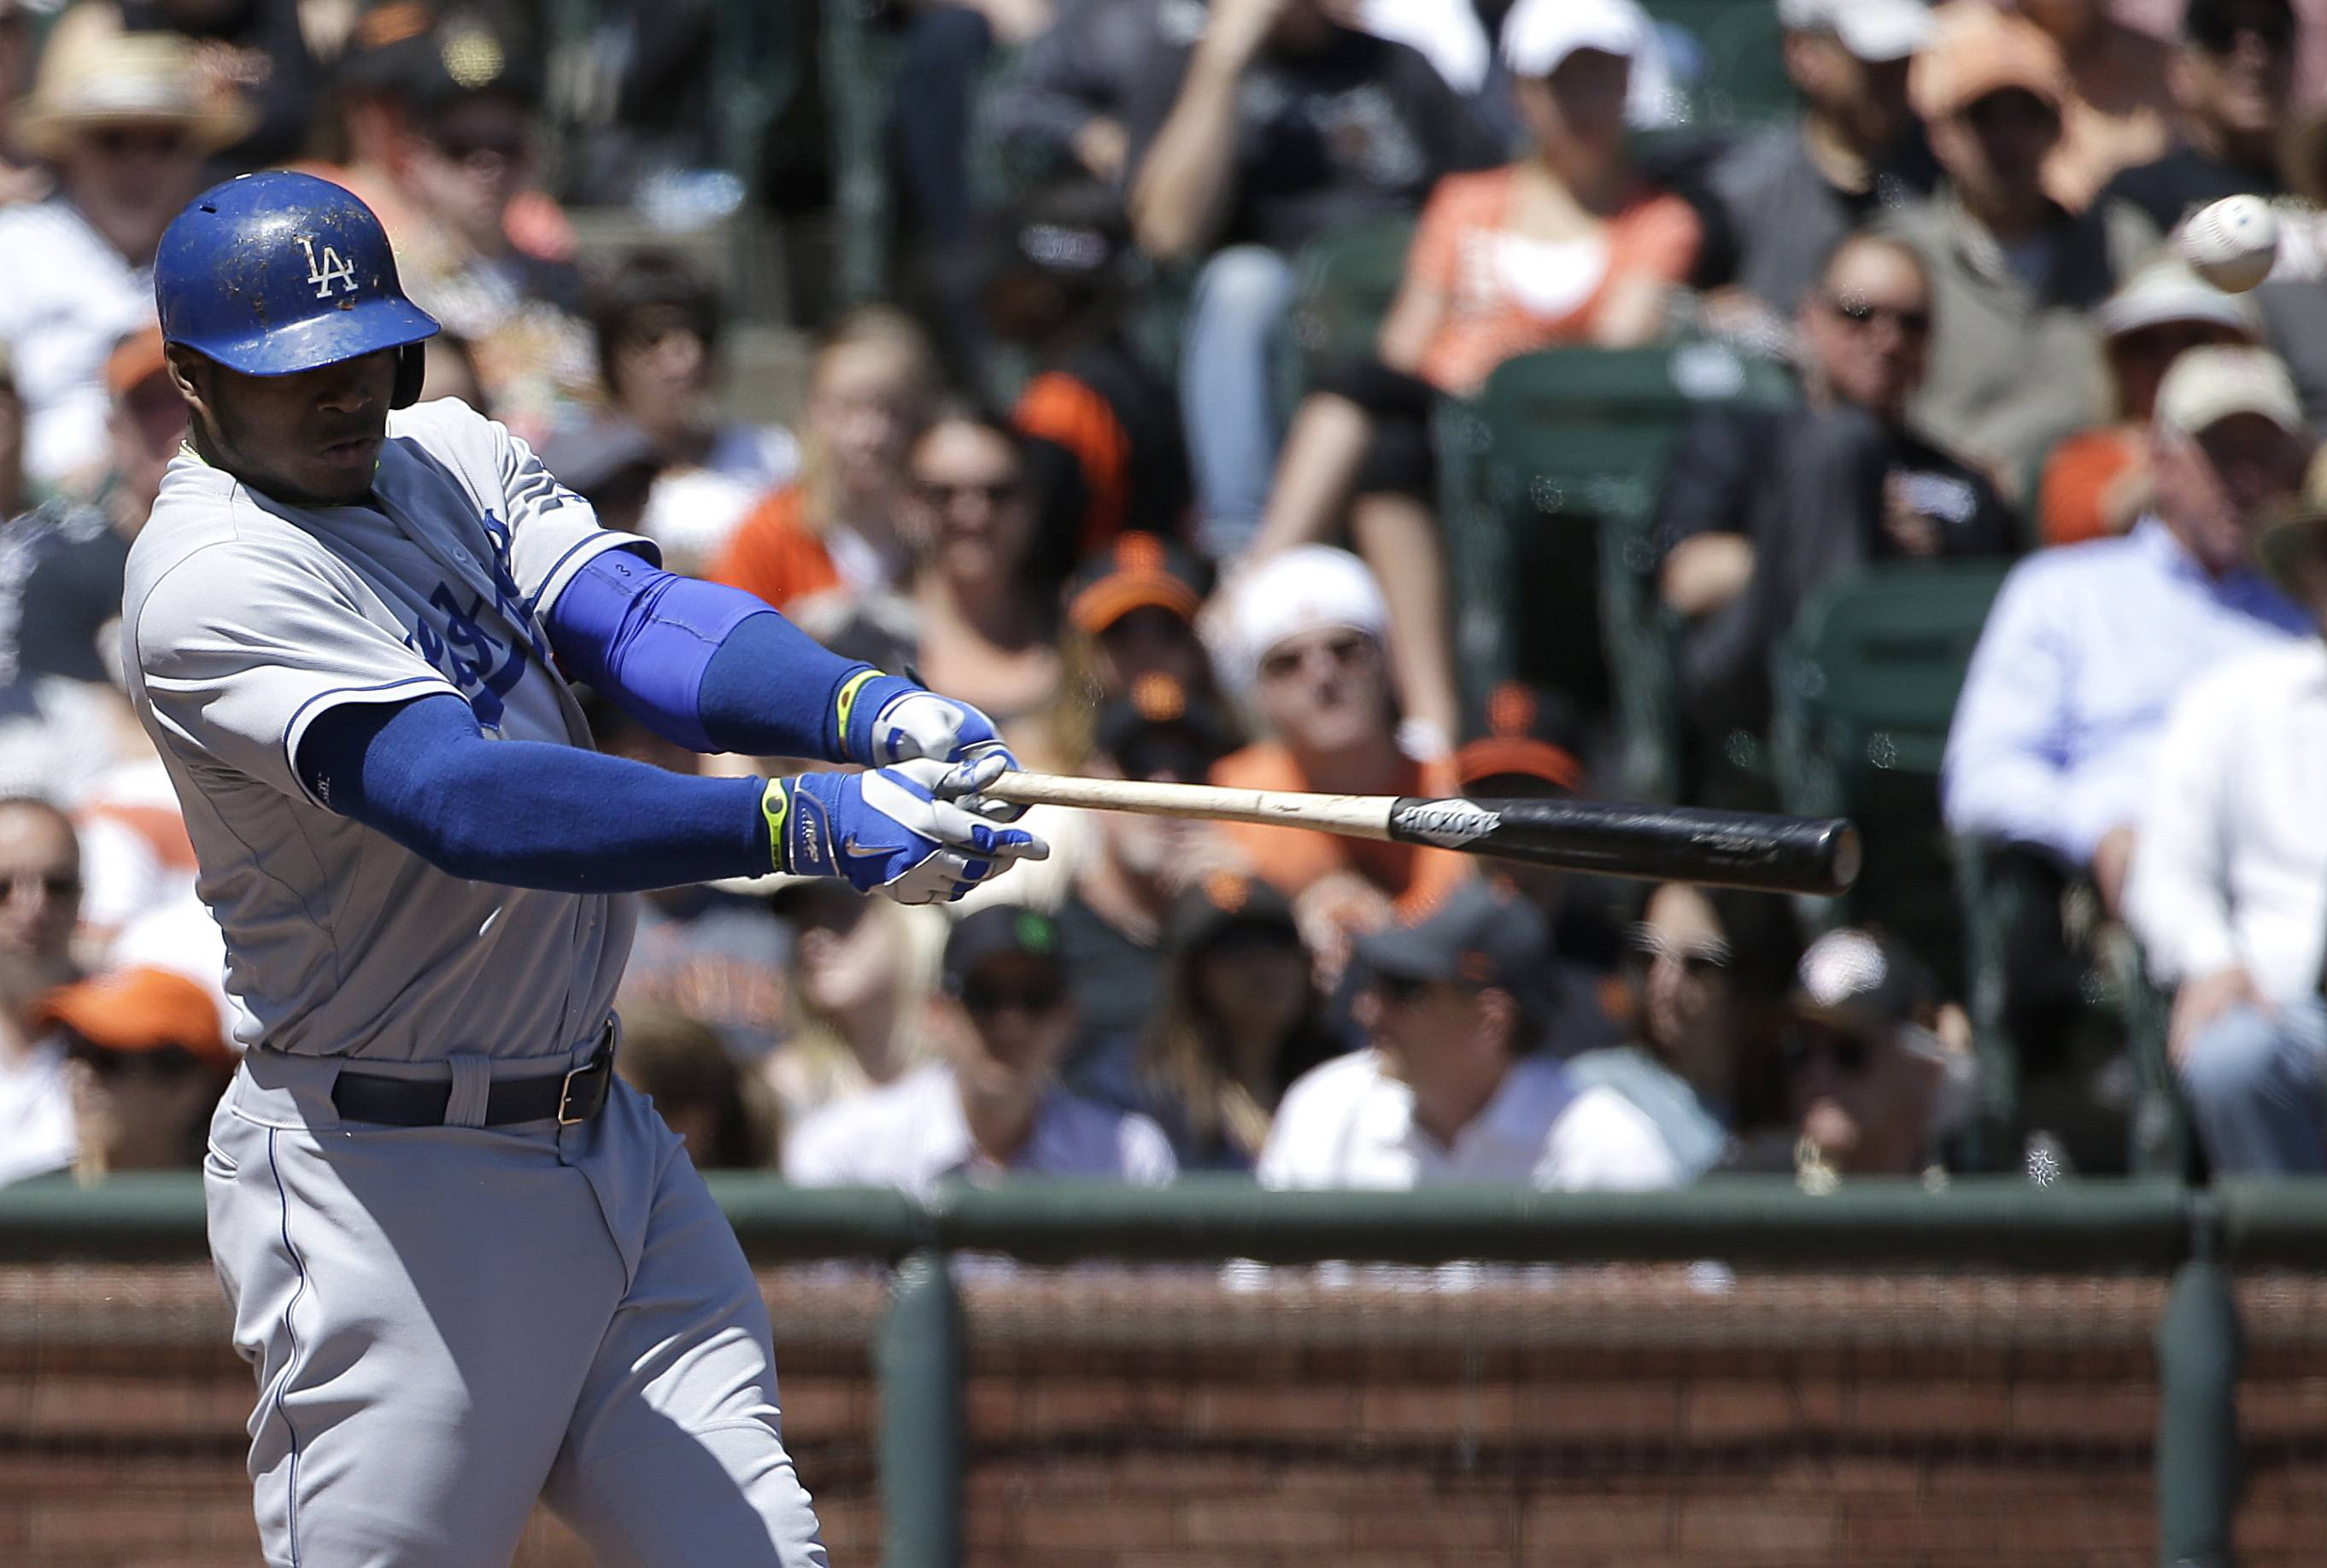 Los Angeles Dodgers' Yasiel Puig hits a single off San Francisco Giants pitcher Madison Bumgarner during the third inning of a baseball game in San Francisco, Thursday, April 17, 2014. The Dodgers won 2-1. (AP Photo/Jeff Chiu)